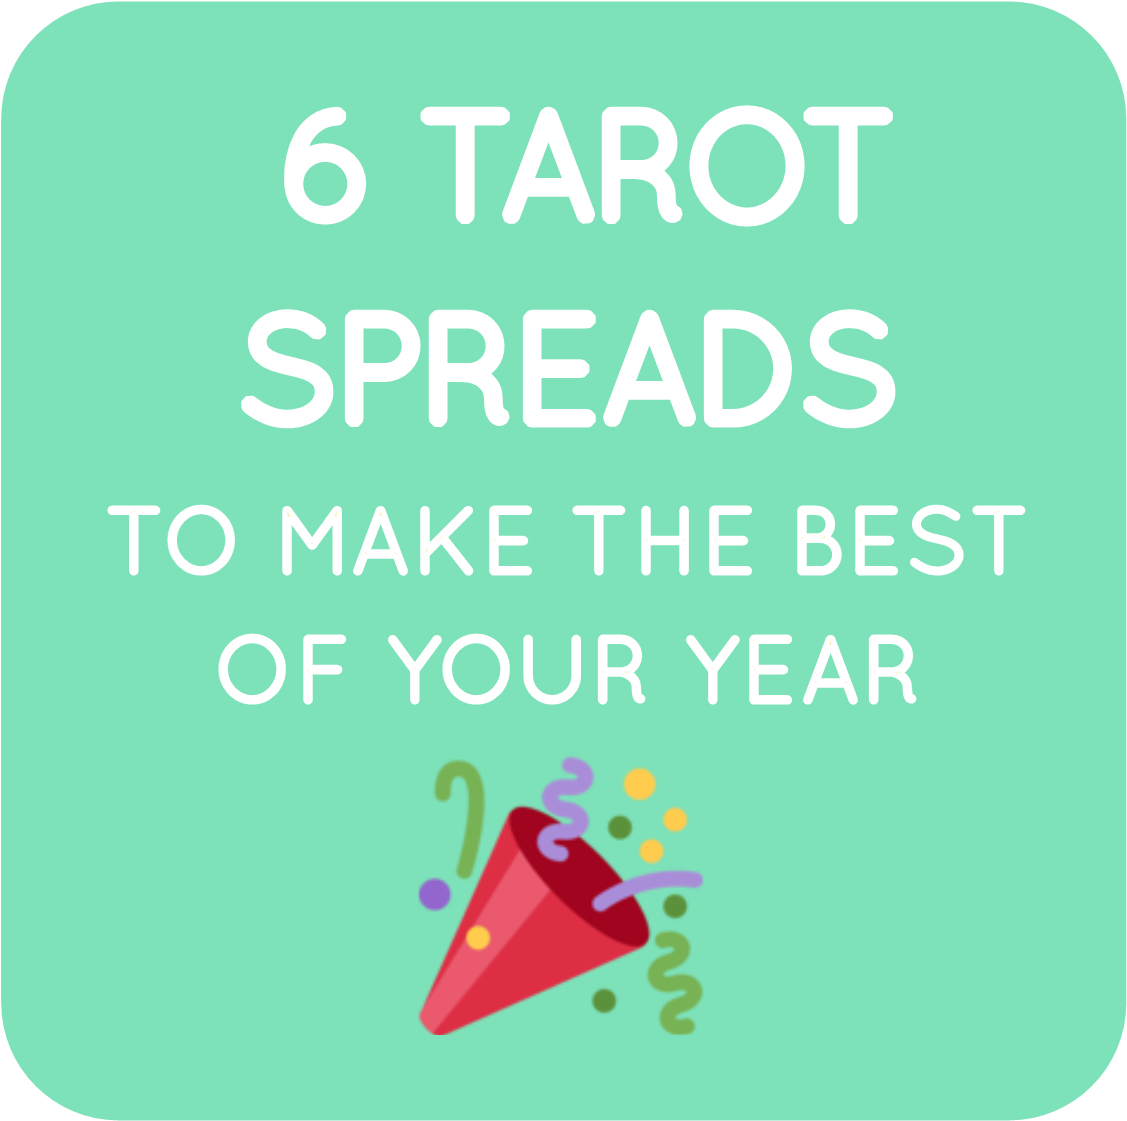 02-tarot spreads make the best of your year squarespace blog image.png